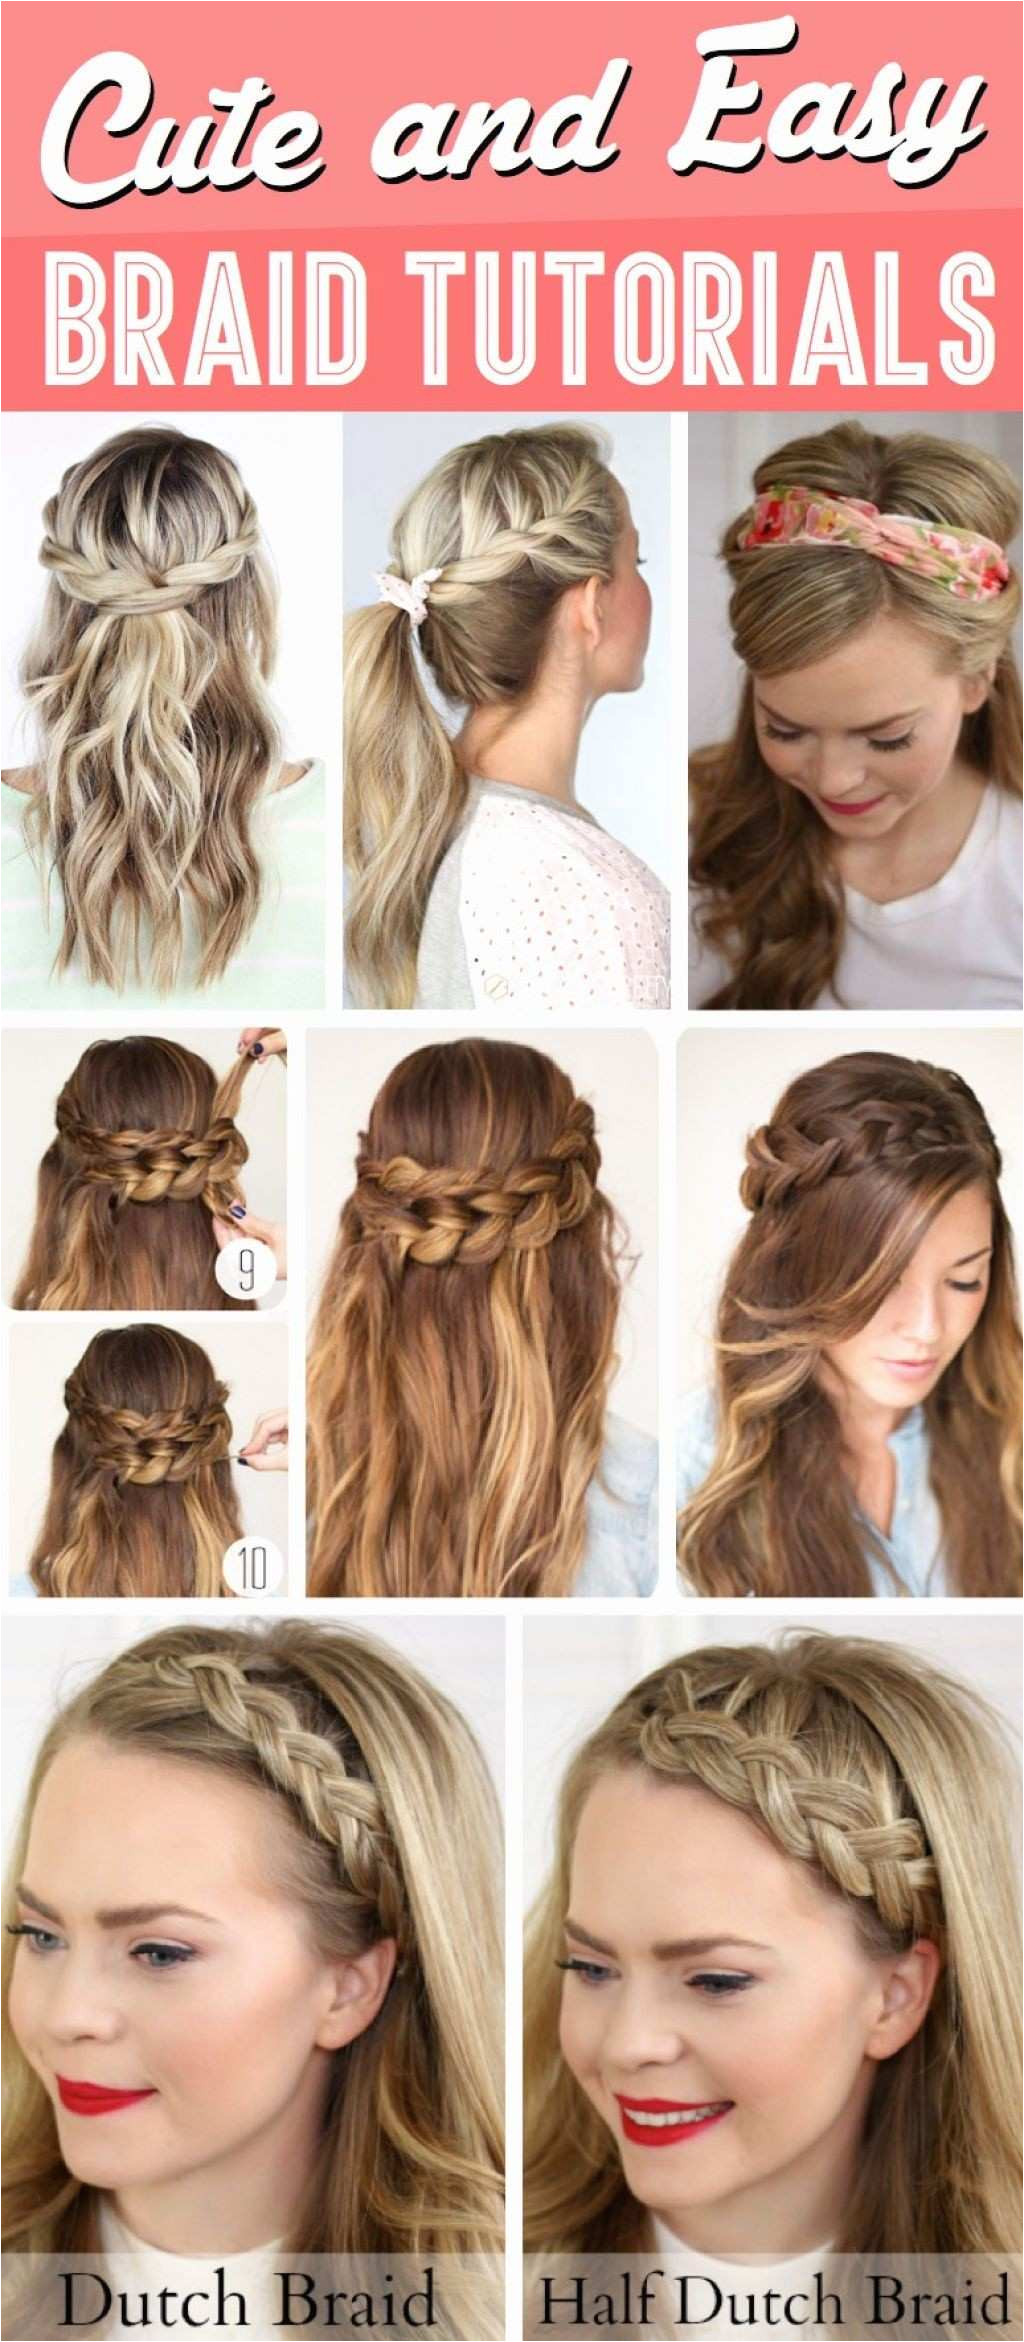 Cool Hairstyles for Girls with Long Hair for School Luxury Beautiful Hairstyles for Short Hair for